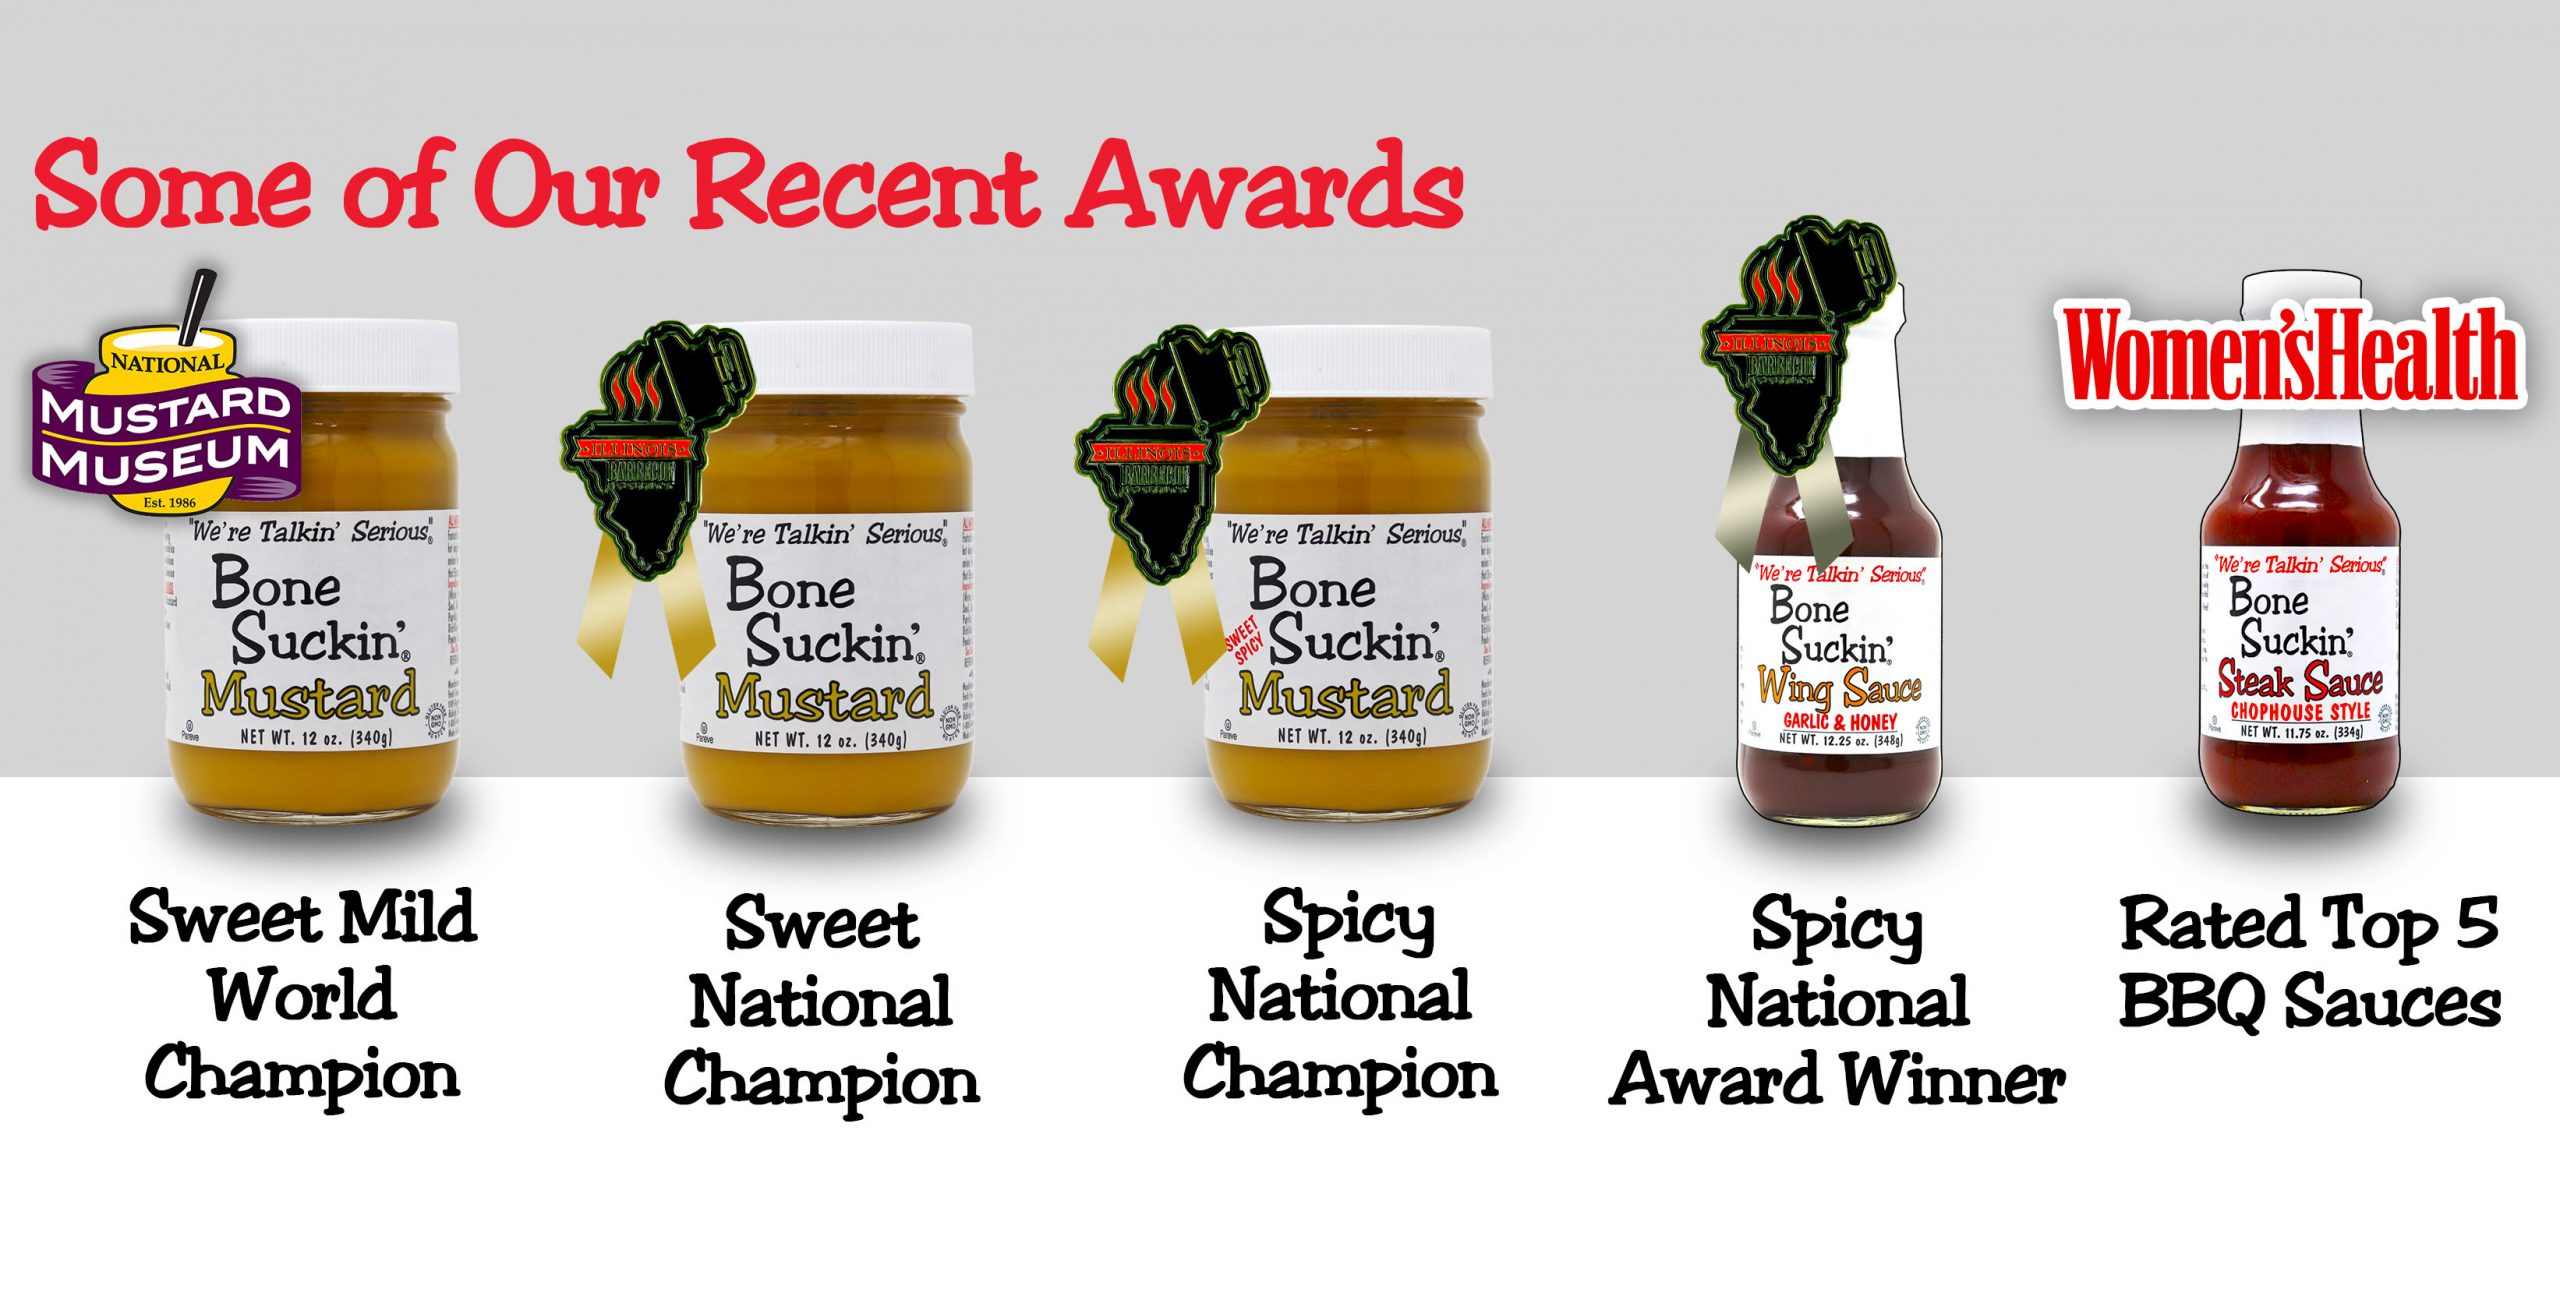 Bone Suckin' Sauce is Non Gmo, Gluten Free, No HFCS! Best Barbecue, Grillin' & Marinating for Land & Sea!